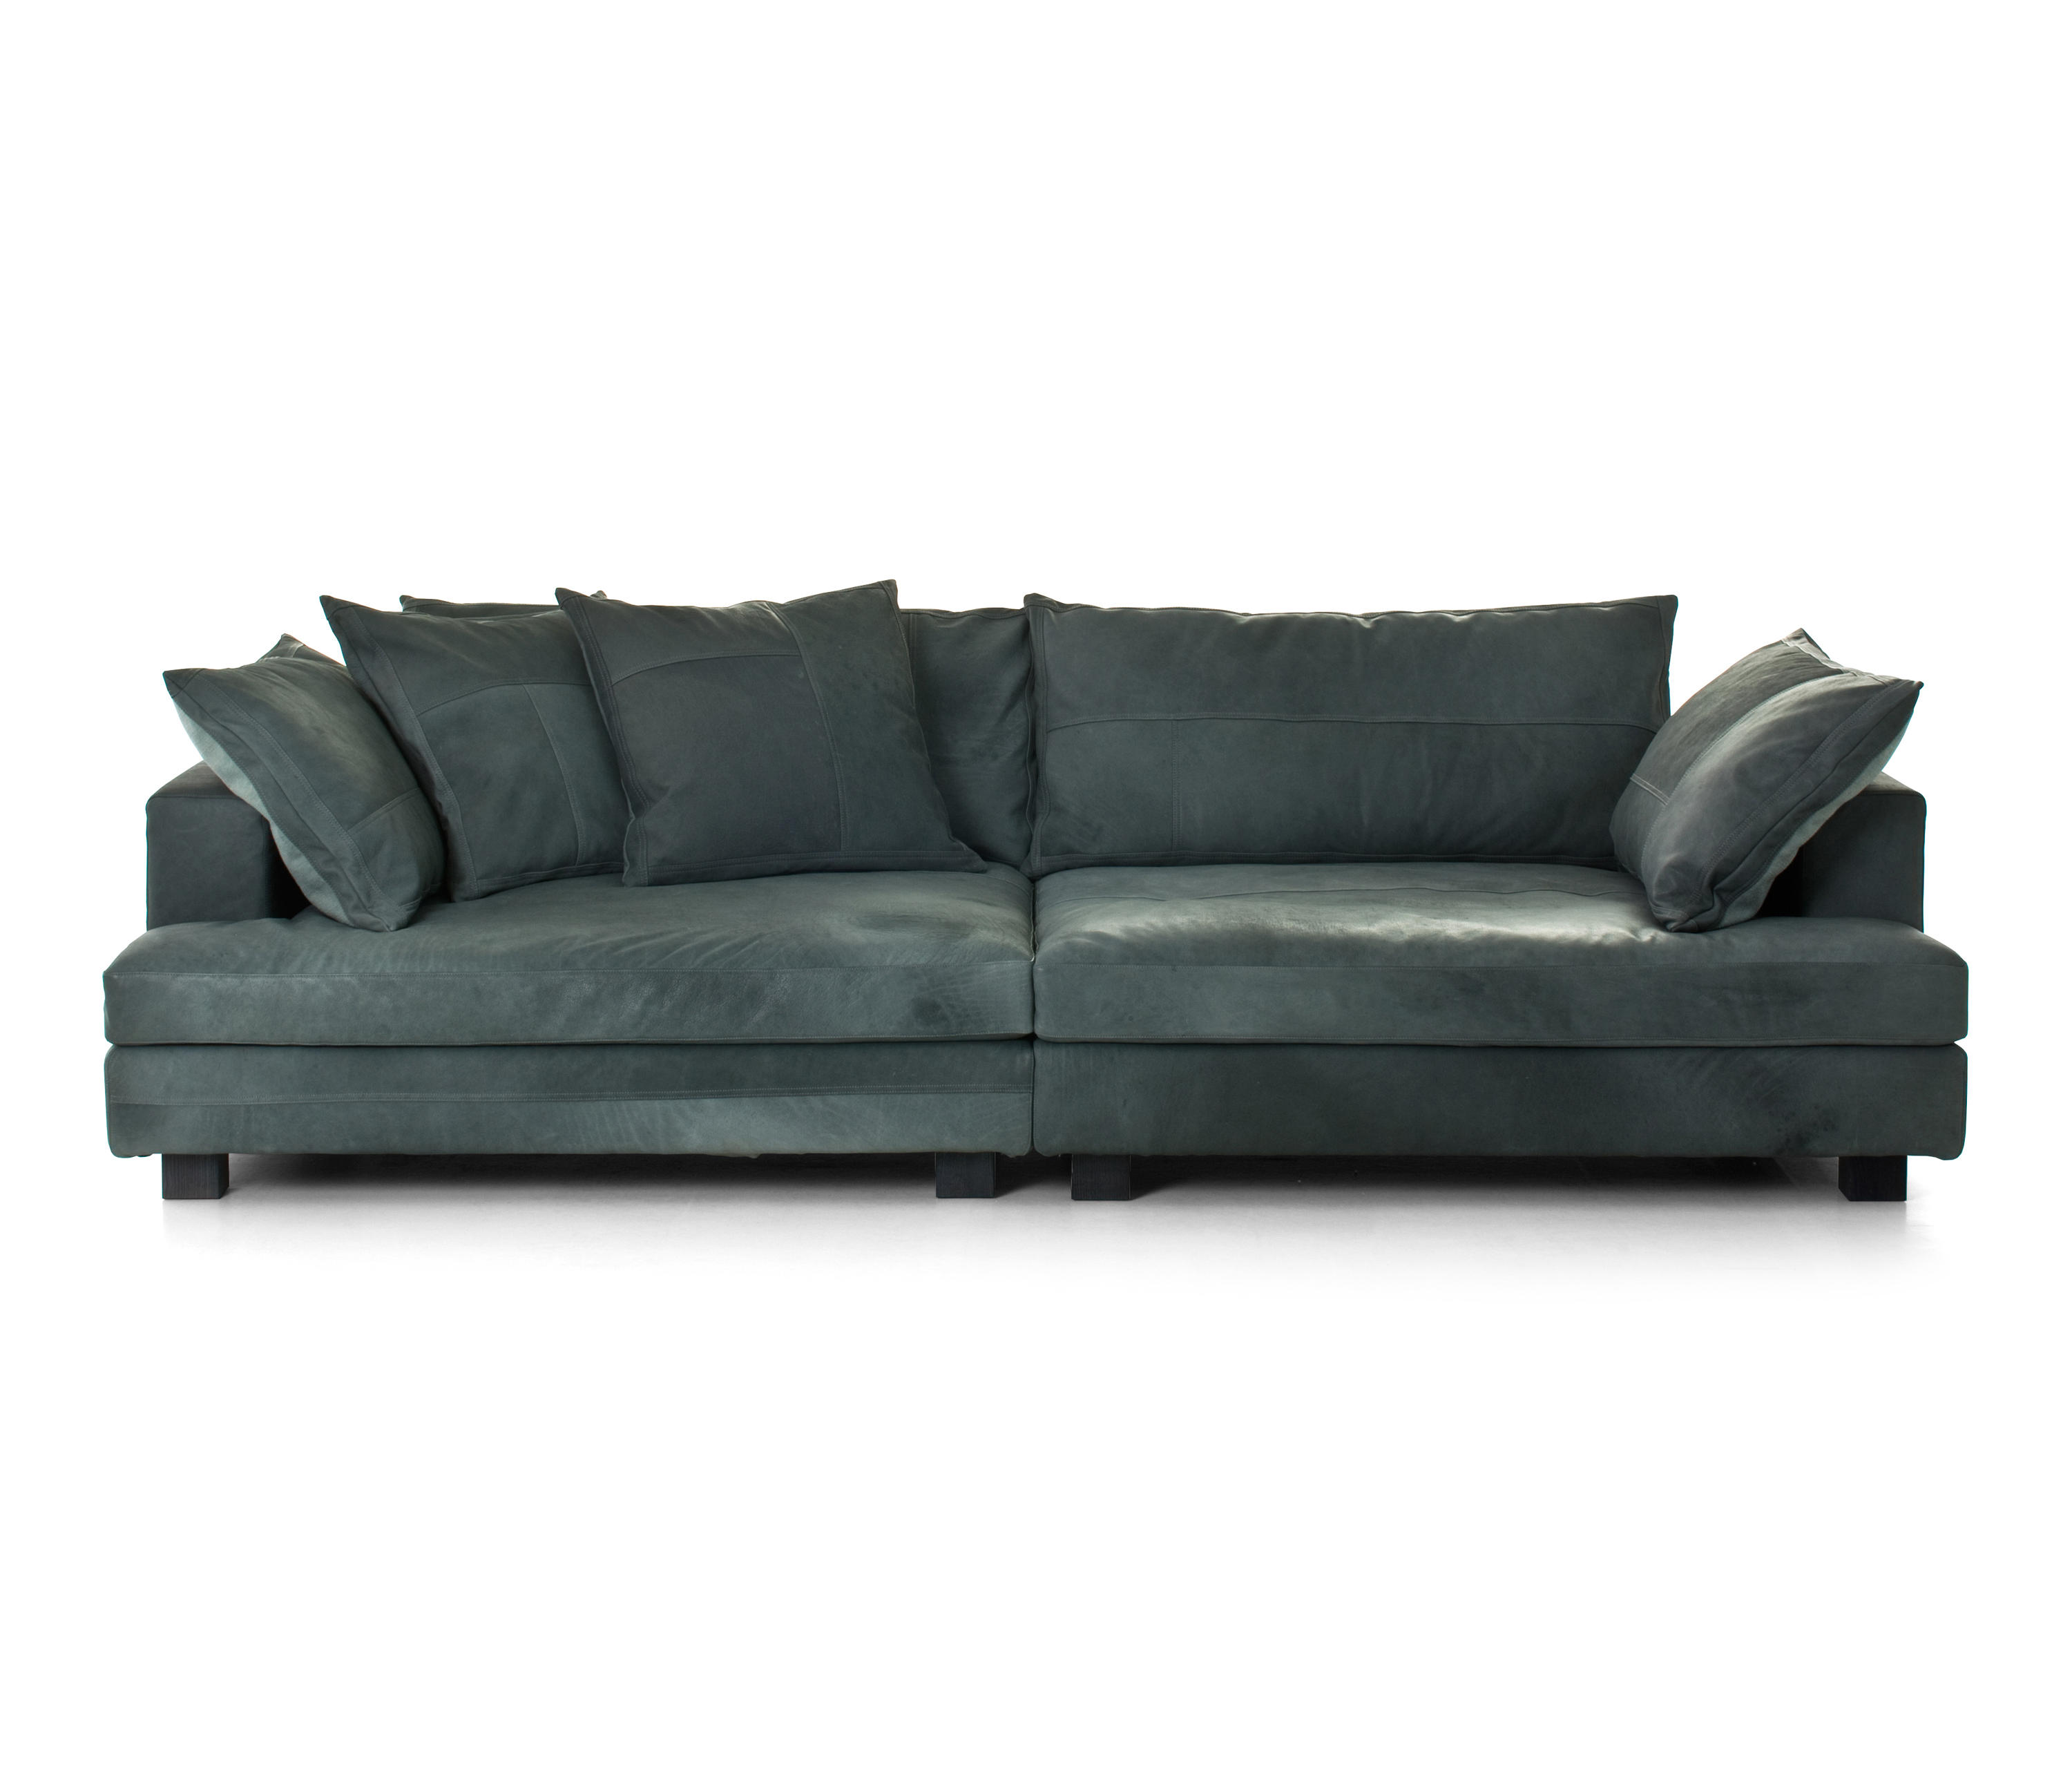 Cloud Atlas By Diesel By Moroso | Sofas